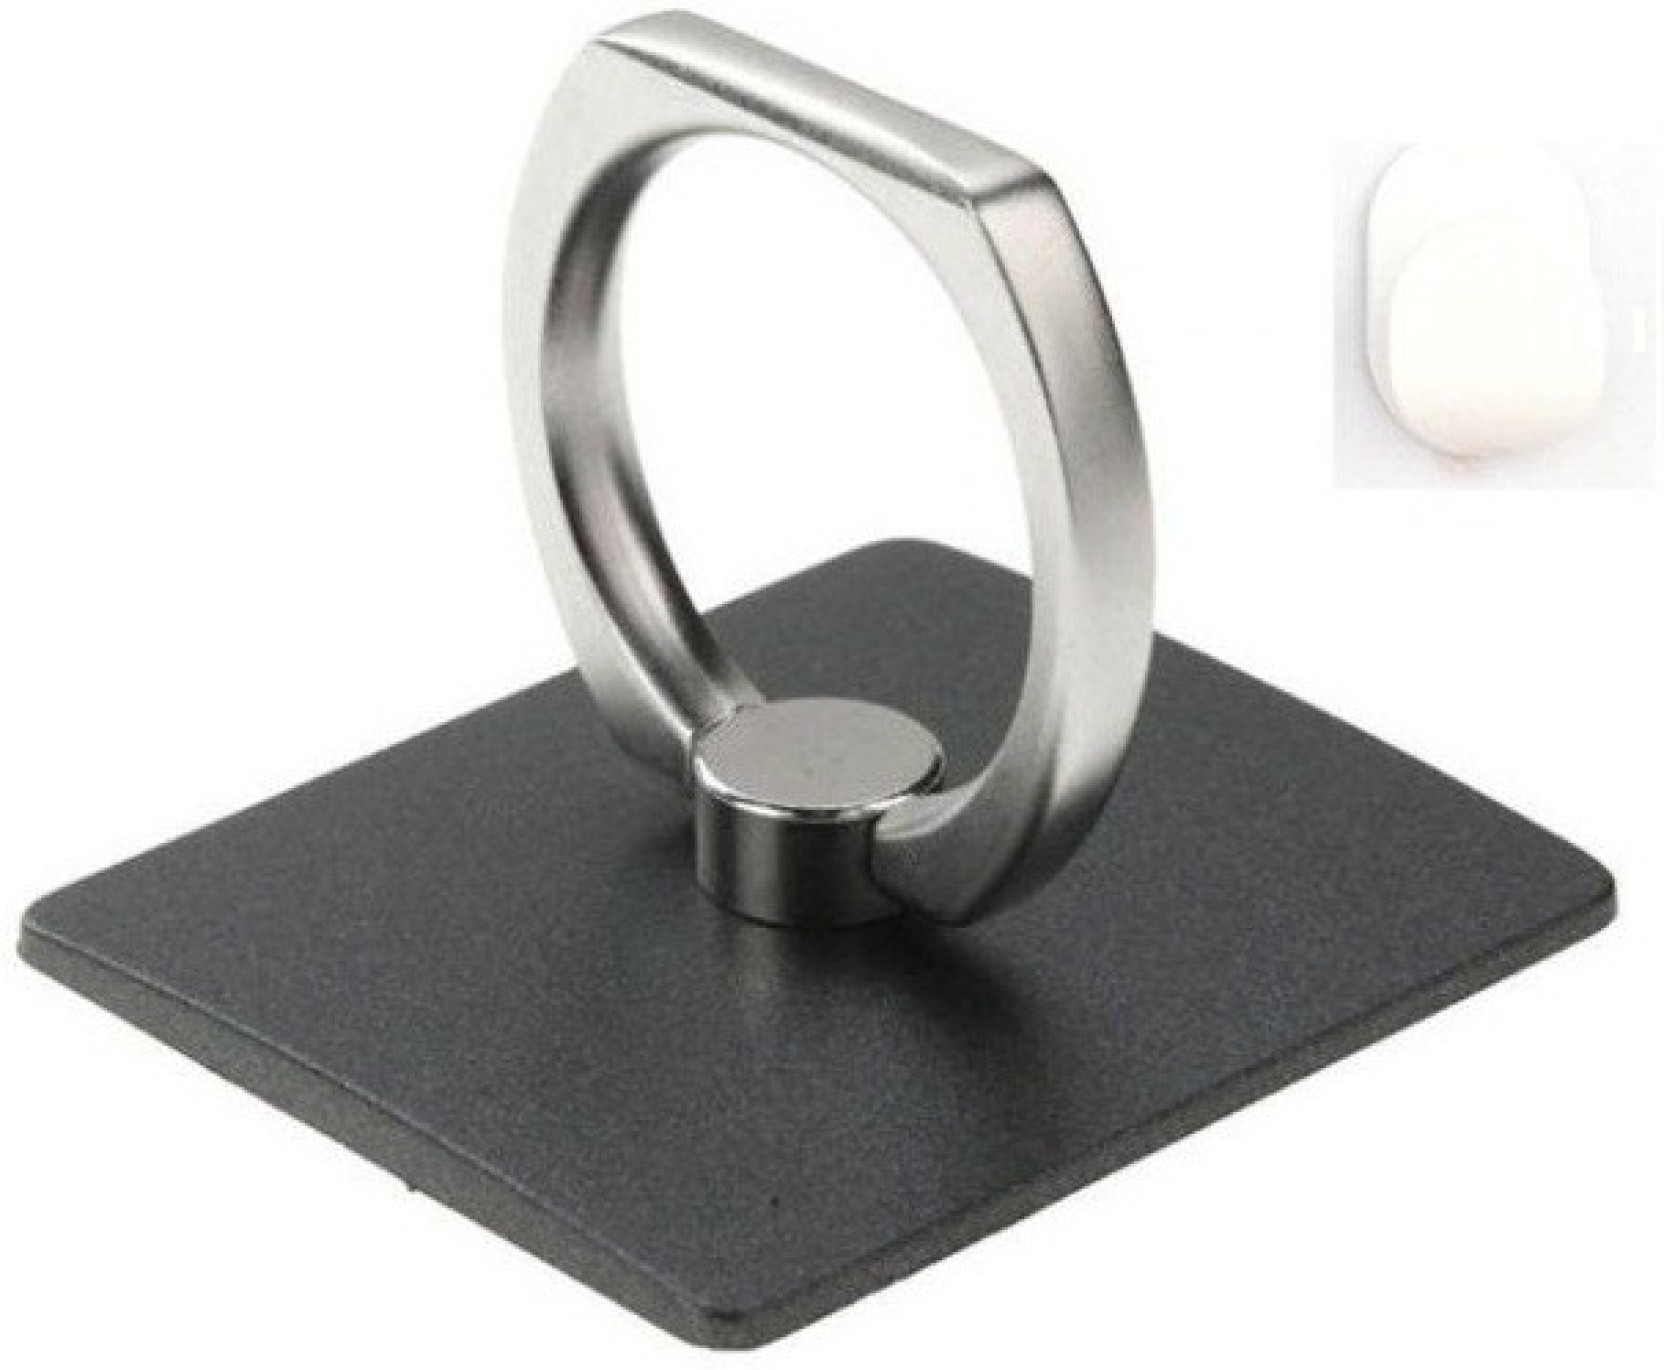 Fku Finger Grip Ring Stand With Hook Black Mobile Holder Iring Home